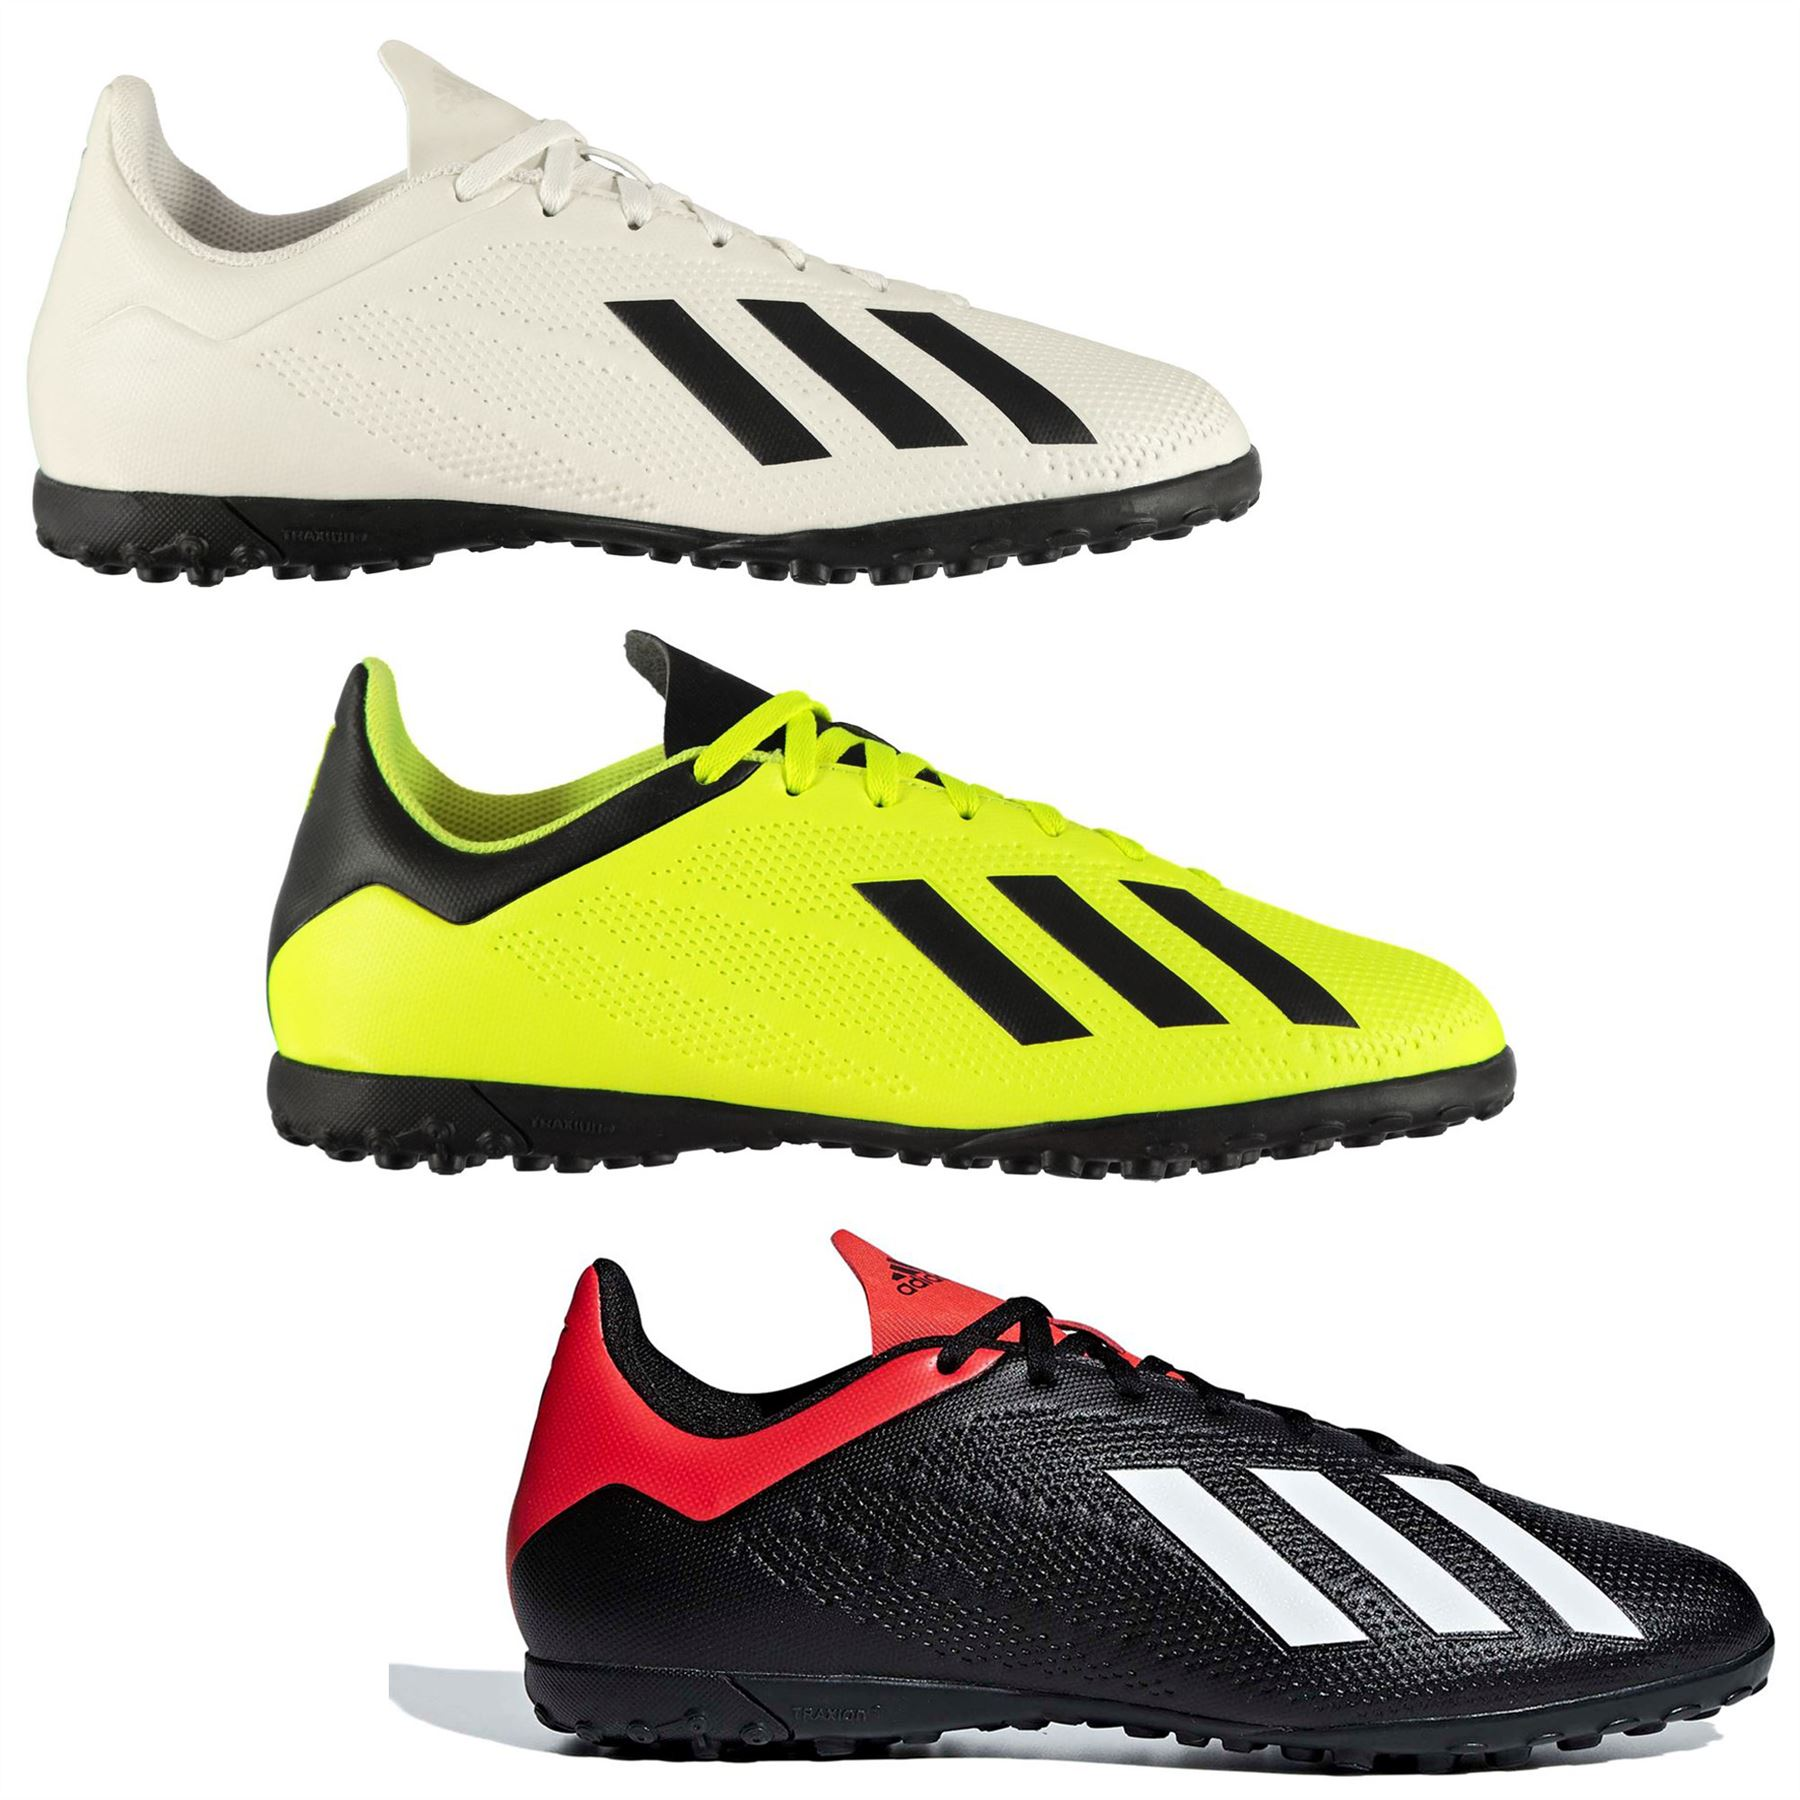 new product a2330 691e5 Details about adidas X Tango 18.4 Astro Turf Football Trainers Mens Soccer  Shoes Sneakers